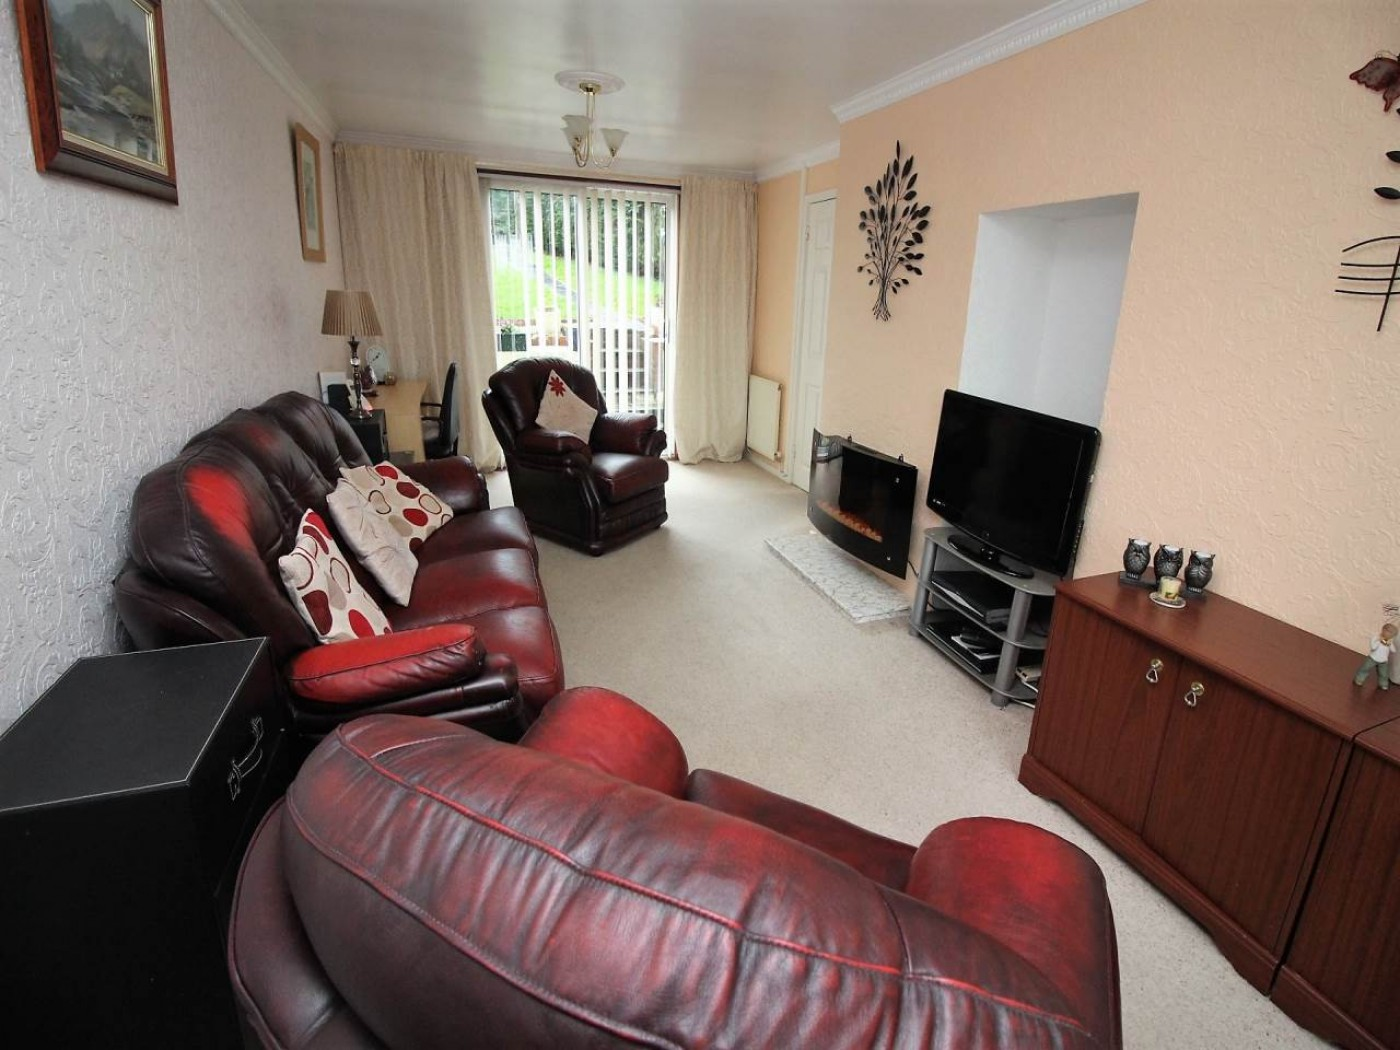 Images for Lambourne crescent, Bettws, Newport EAID:freelancer BID:0004-0ac8-83a7-b613